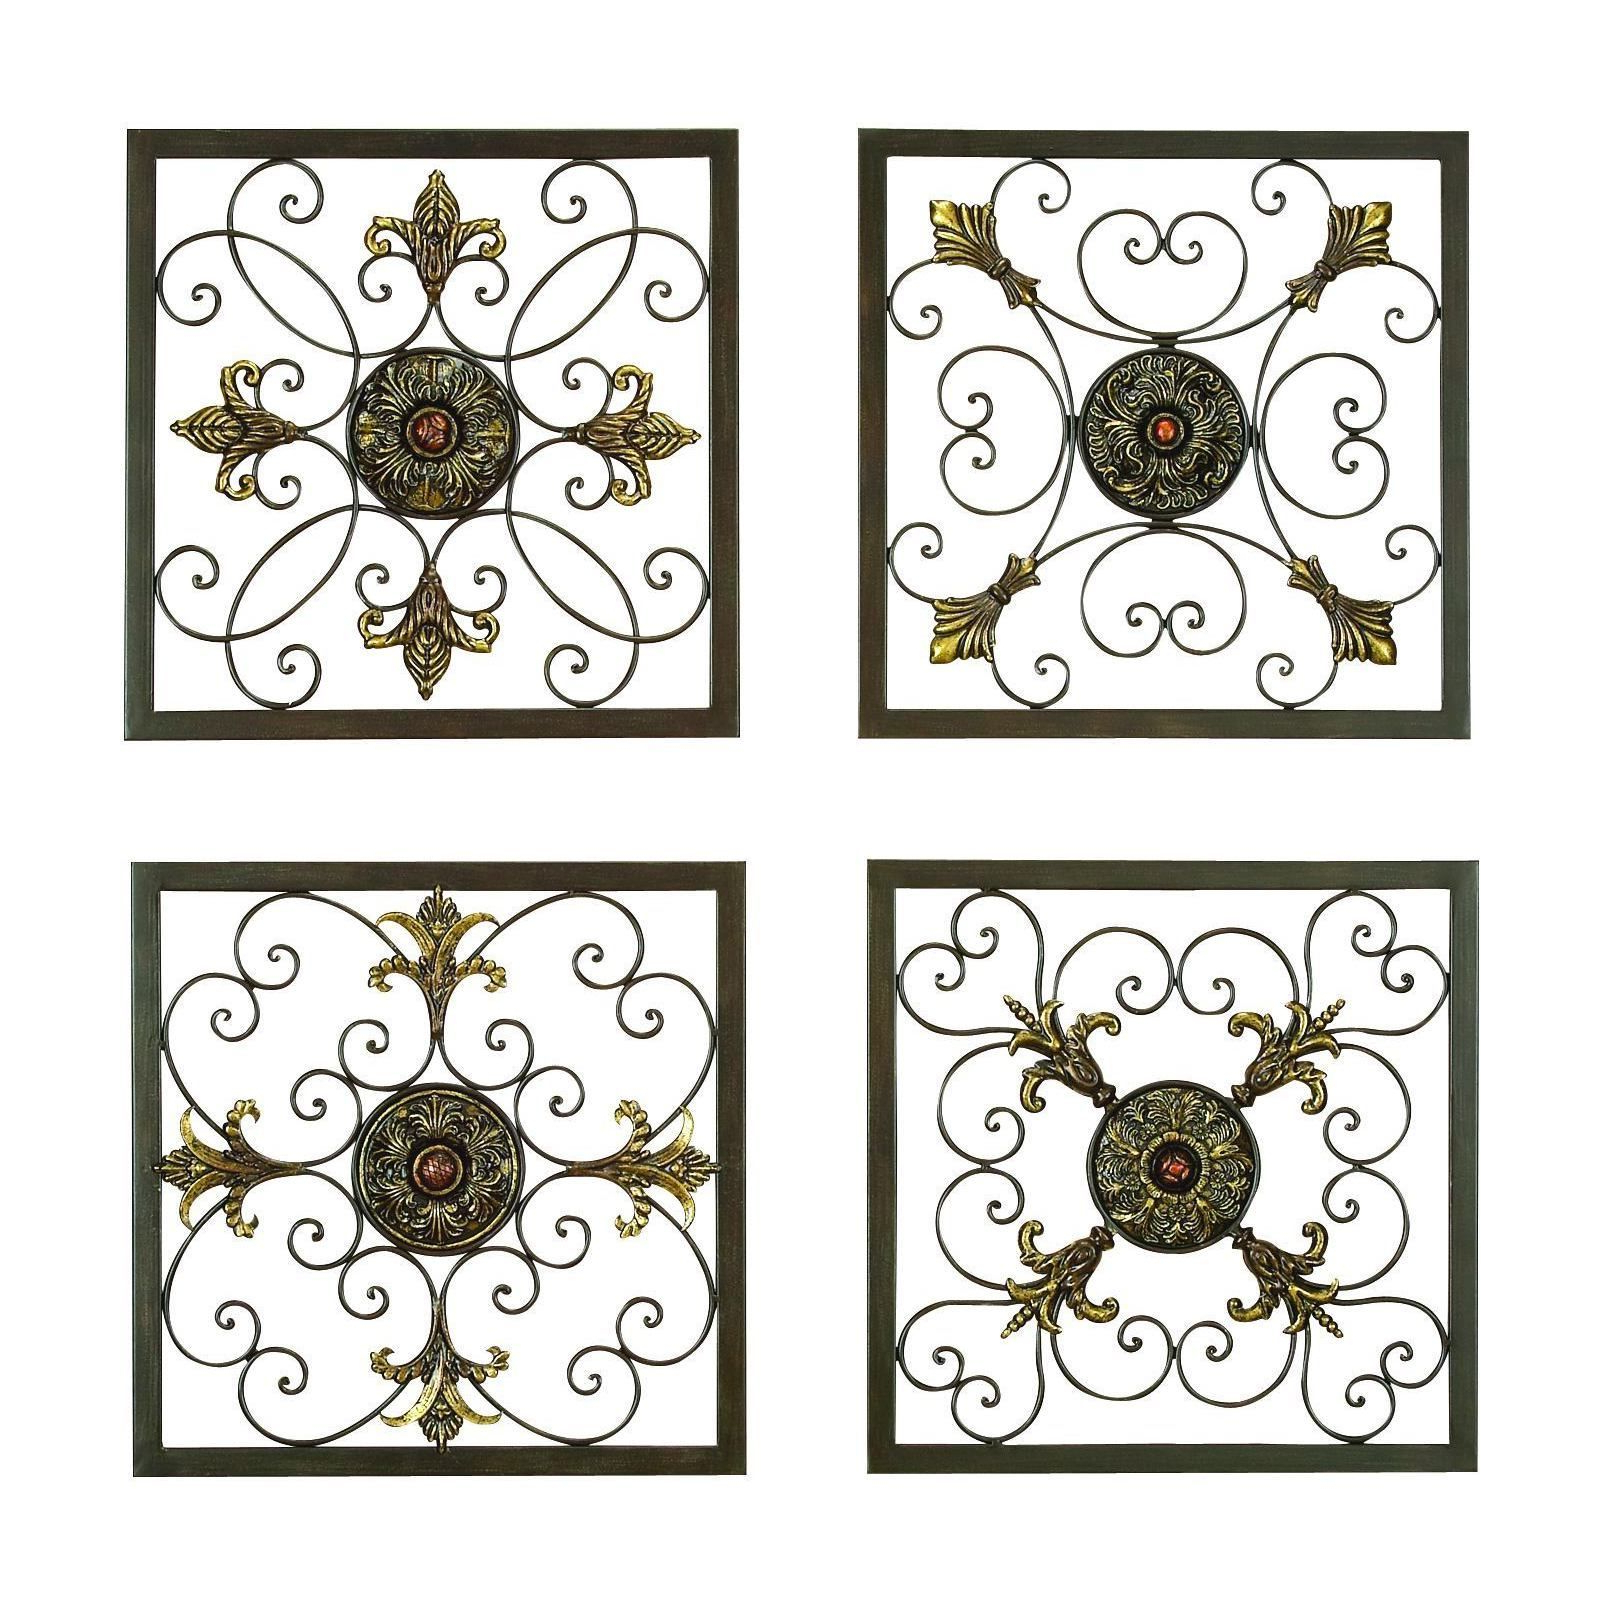 Popular Ornate Scroll Wall Decor For These Gorgeous Square Wall Plaques Adds A Distinctive Touch Of (View 13 of 20)